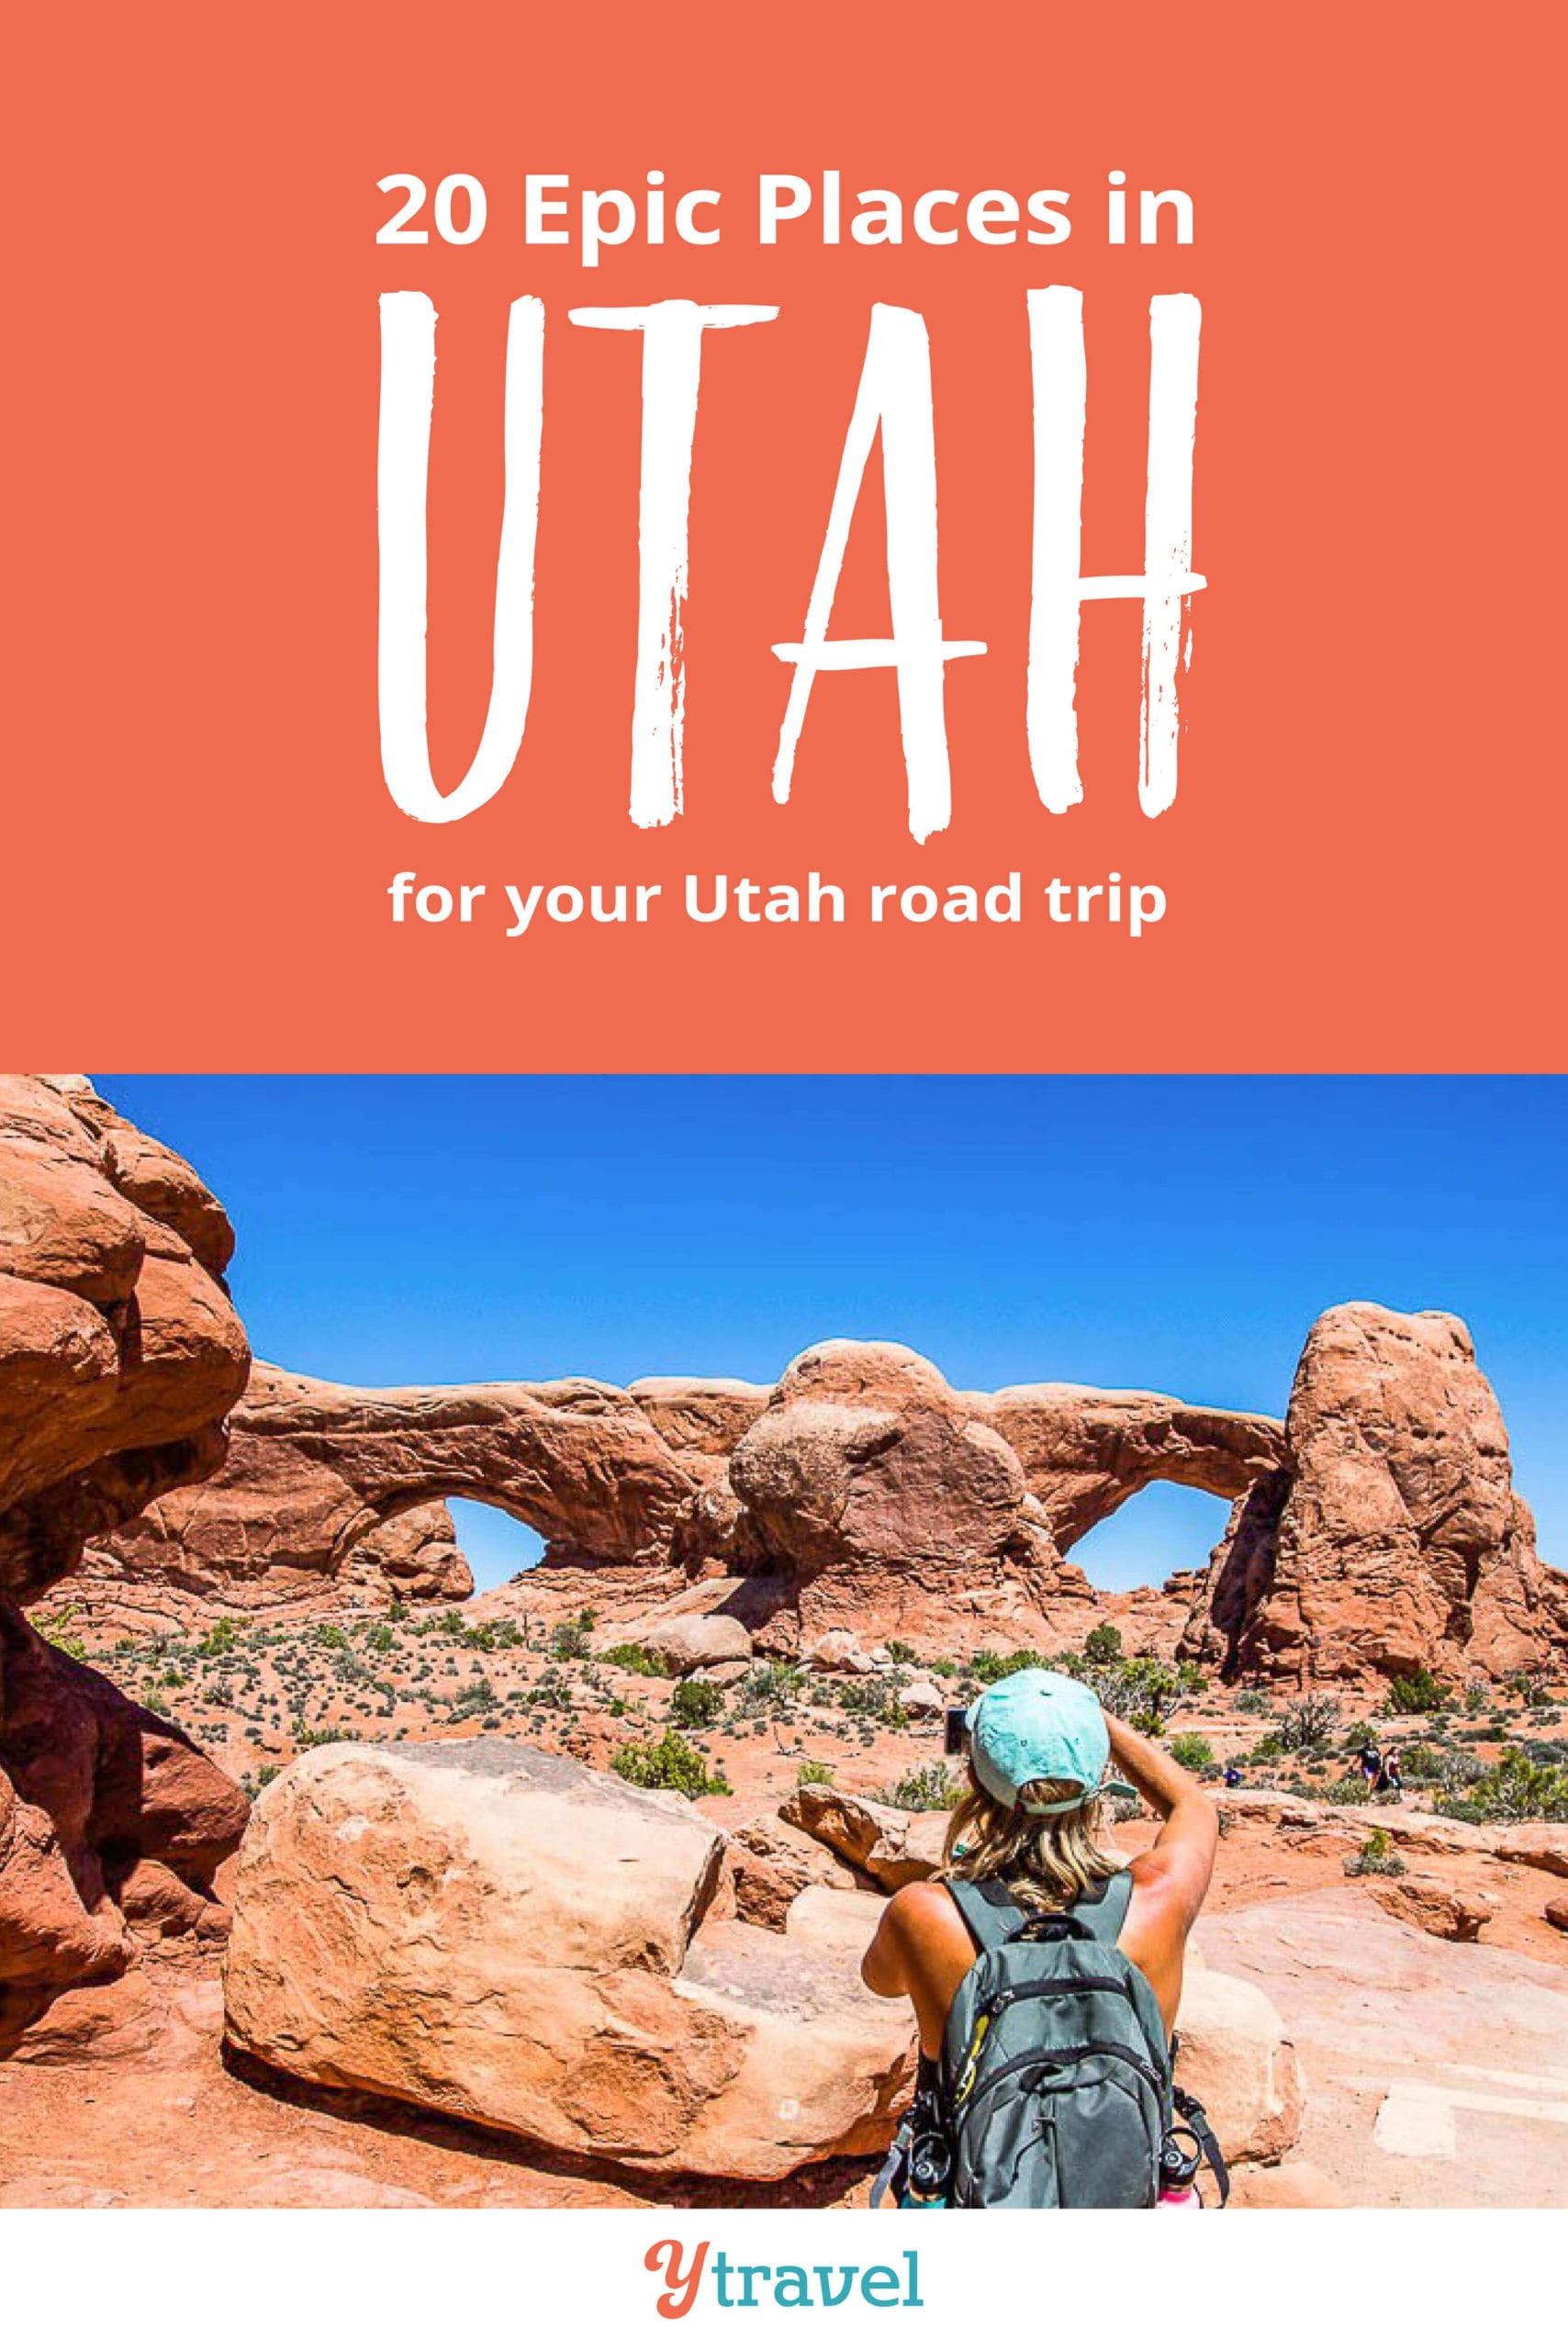 Planning to visit Utah? Here are 20 incredible places to visit in Utah for your Utah road trip. Don't take a Utah vacation before reading this Utah travel guide!